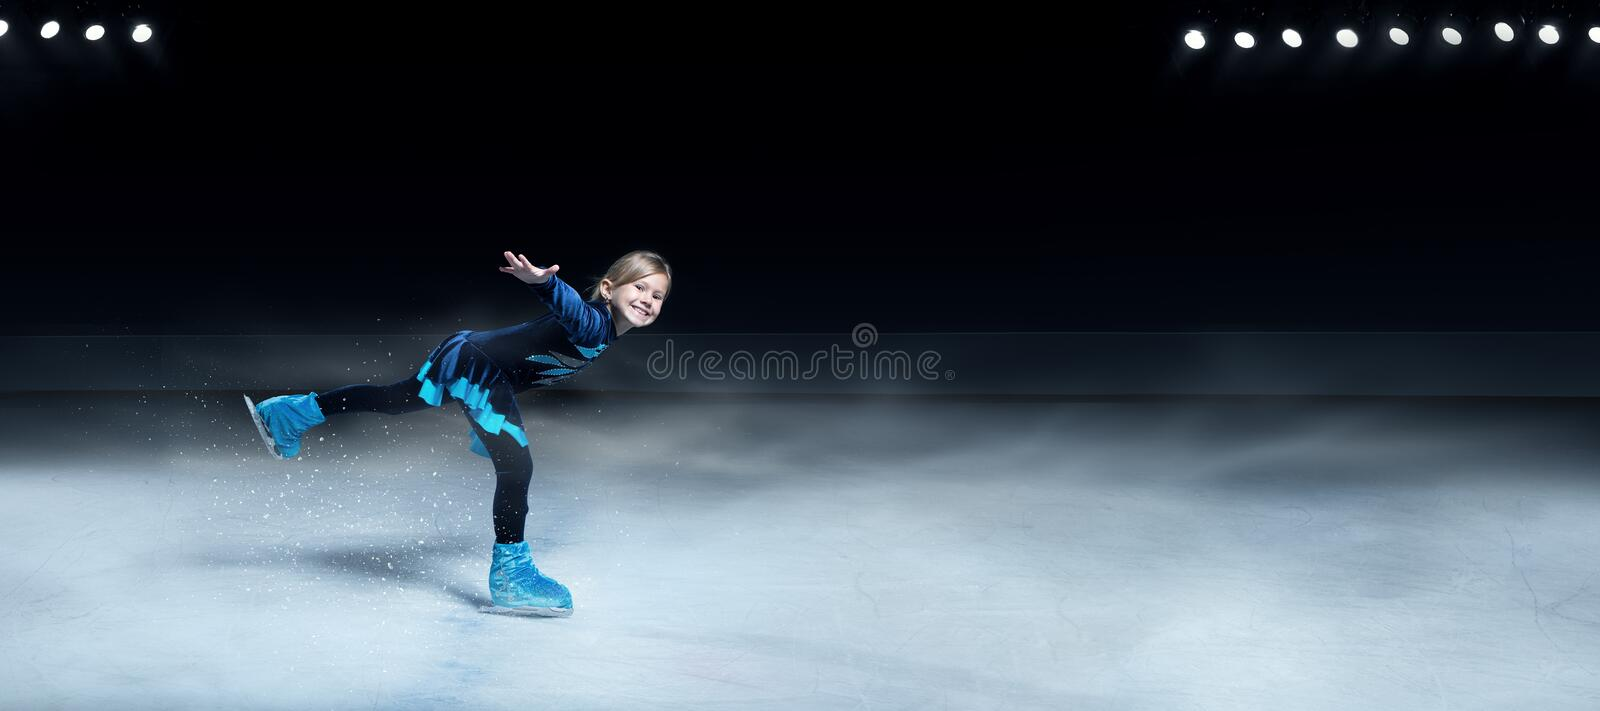 Figure skater on dark ice arena background stock photo